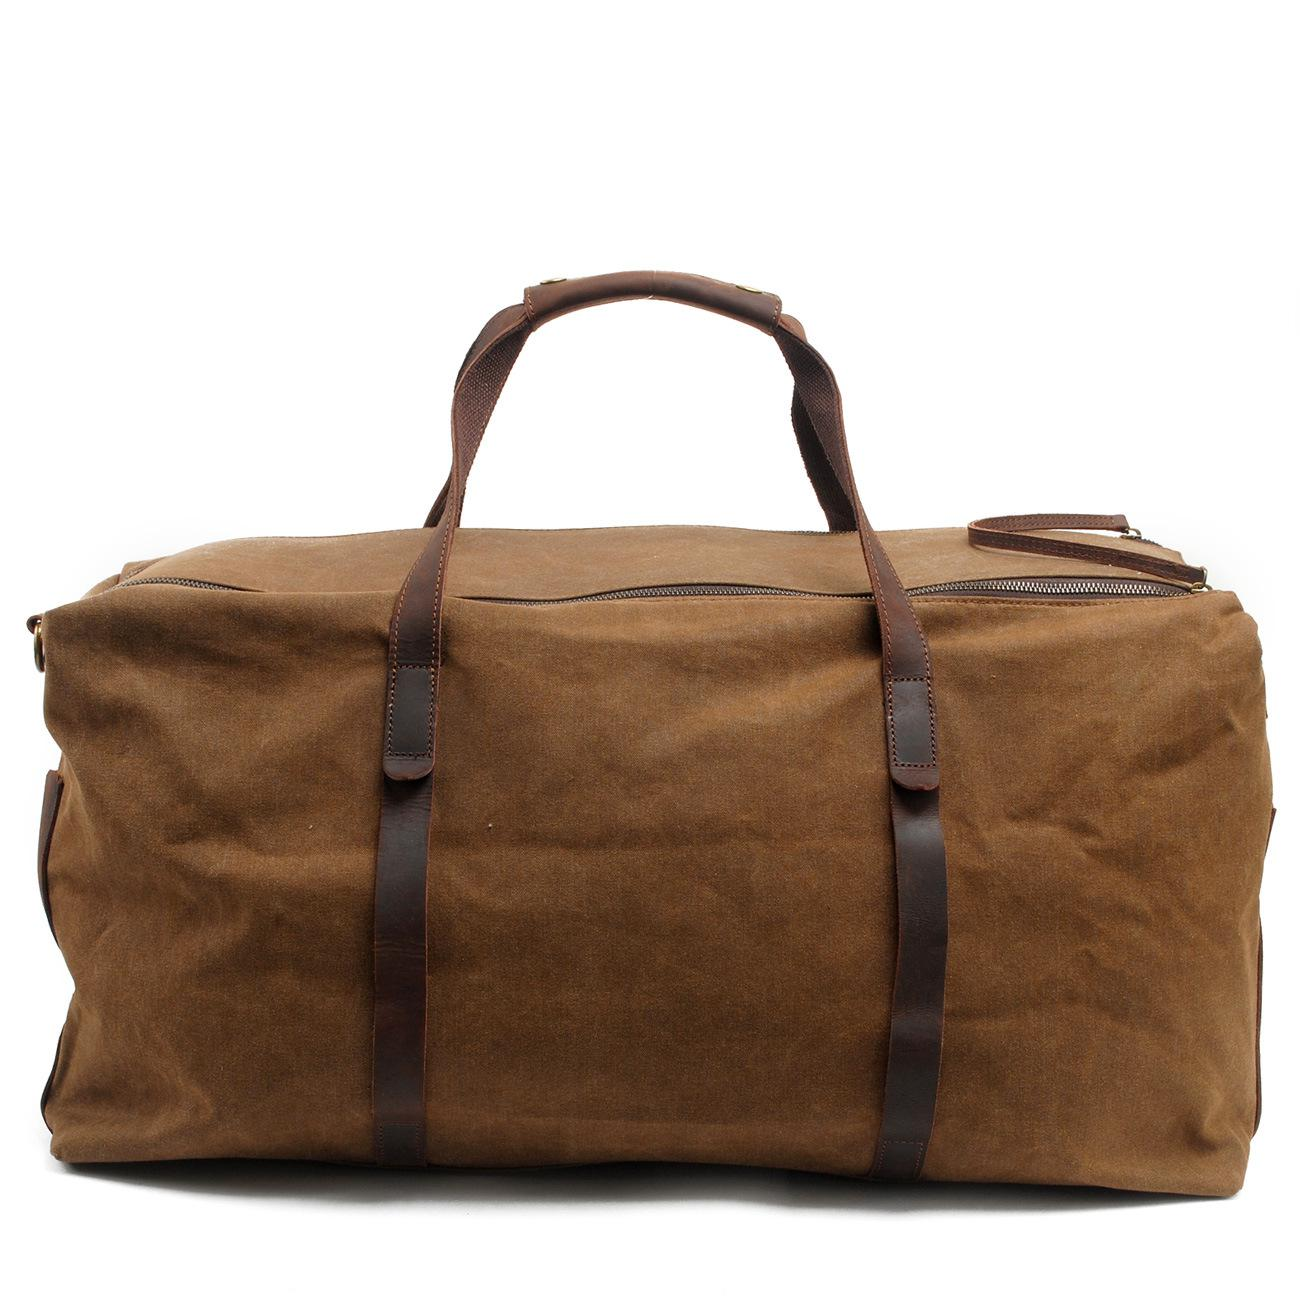 2016 Rushed Men Solid Khaki Travel Bags Vintage Wax Printing Canvas Leather Luggage Duffel Tote Large Weekend Bag Overnight mybrandoriginal travel totes wax canvas men travel bag men s large capacity travel bags vintage tote weekend travel bag b102